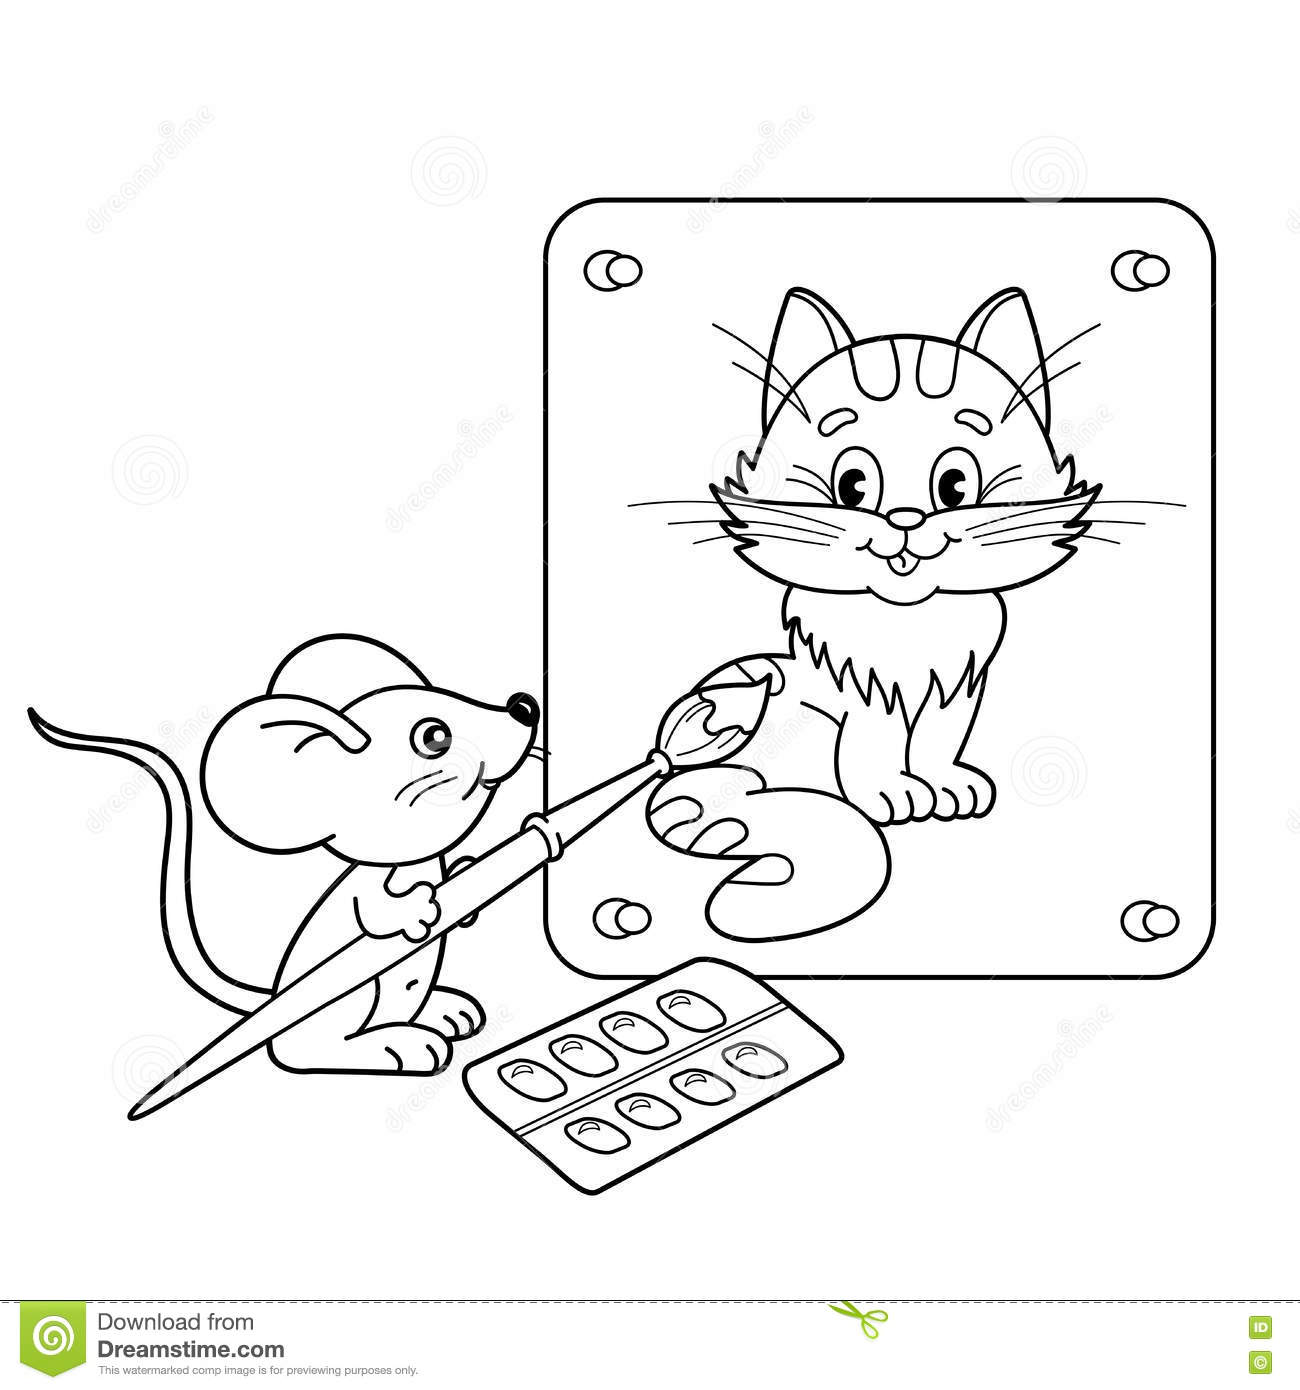 coloring page outline of cartoon little mouse with picture of cat